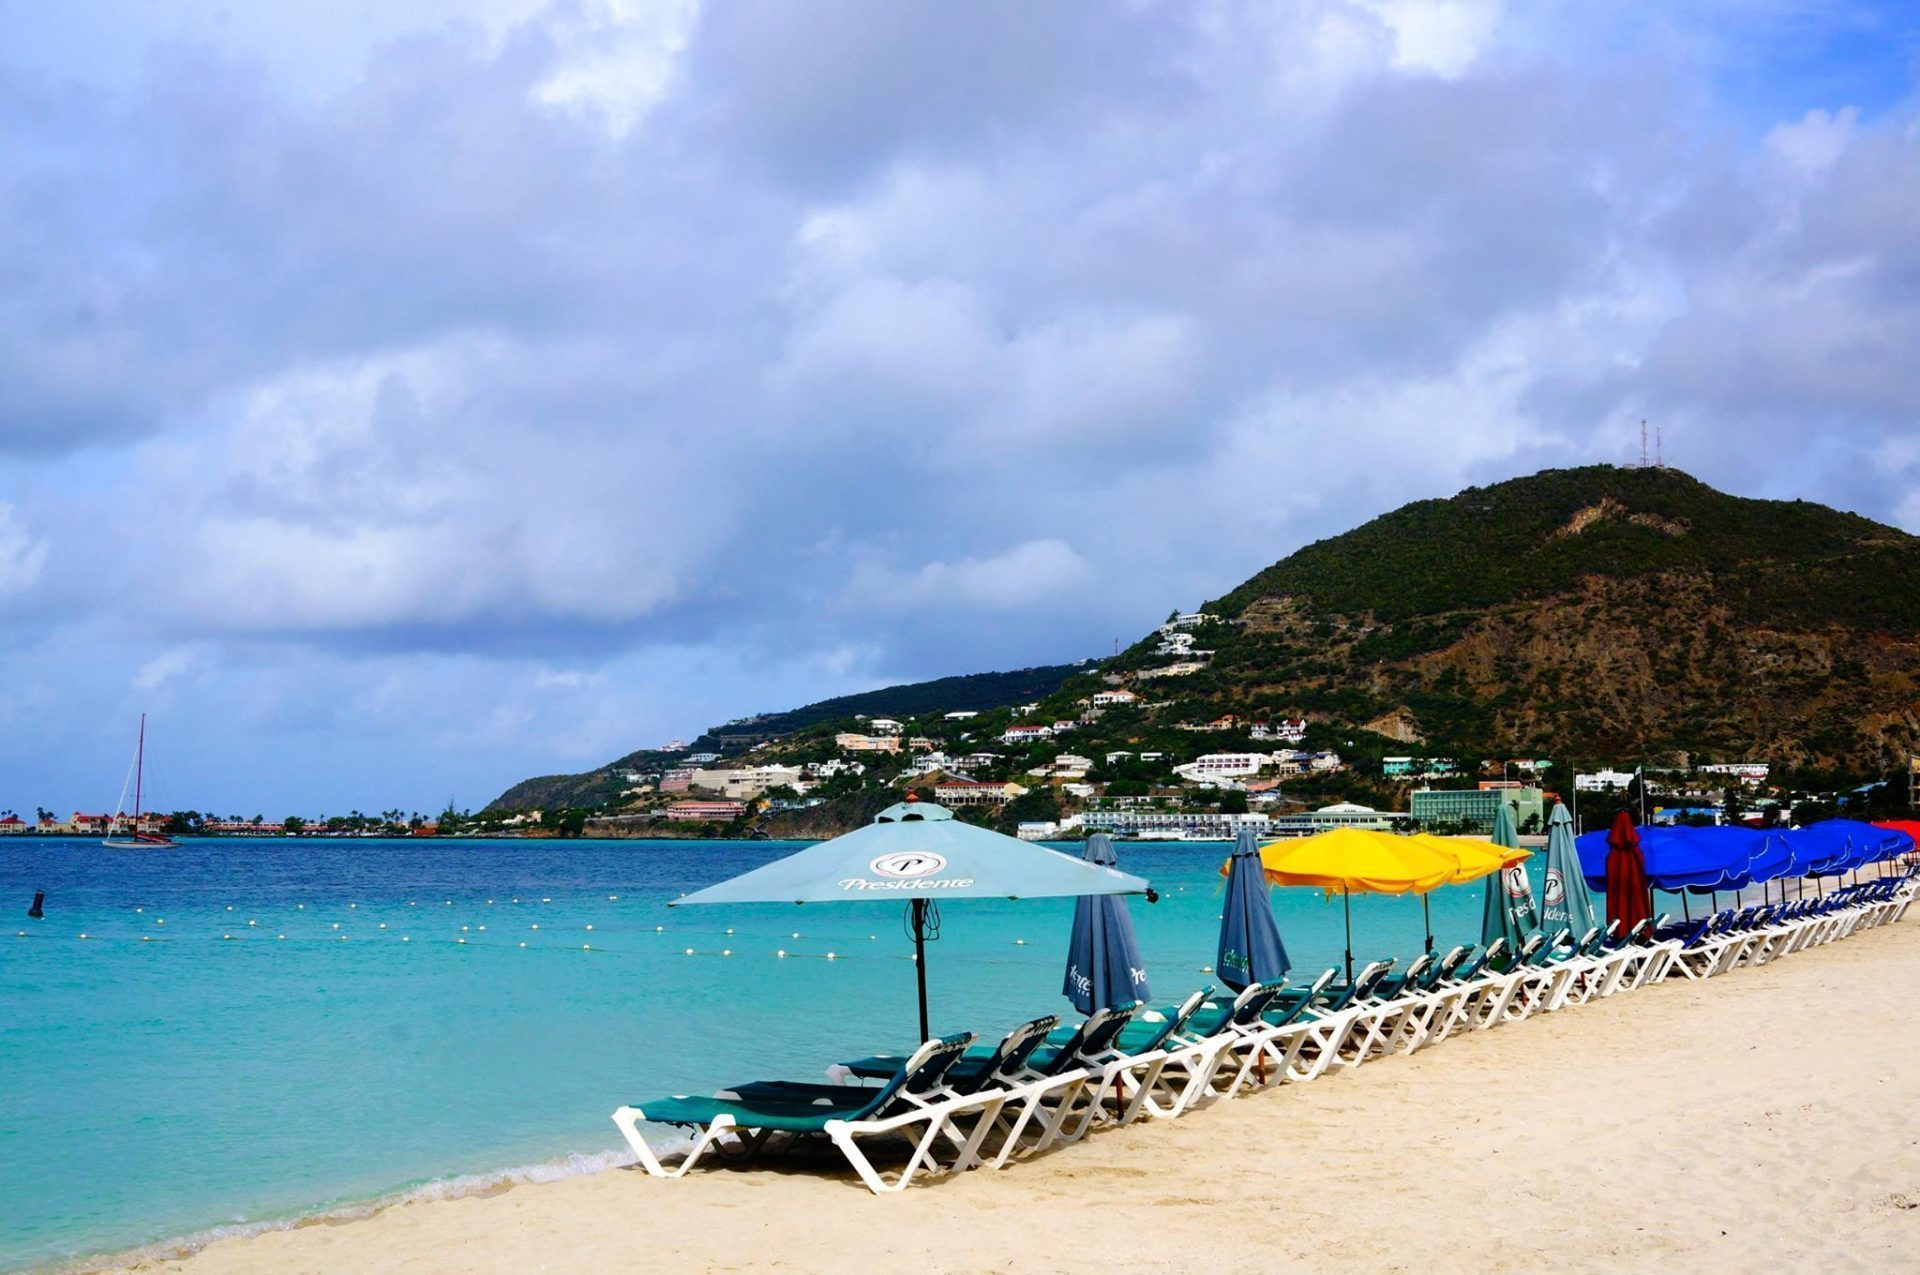 St Maarten beach with umbrellas and beach chairs and blue ocean water